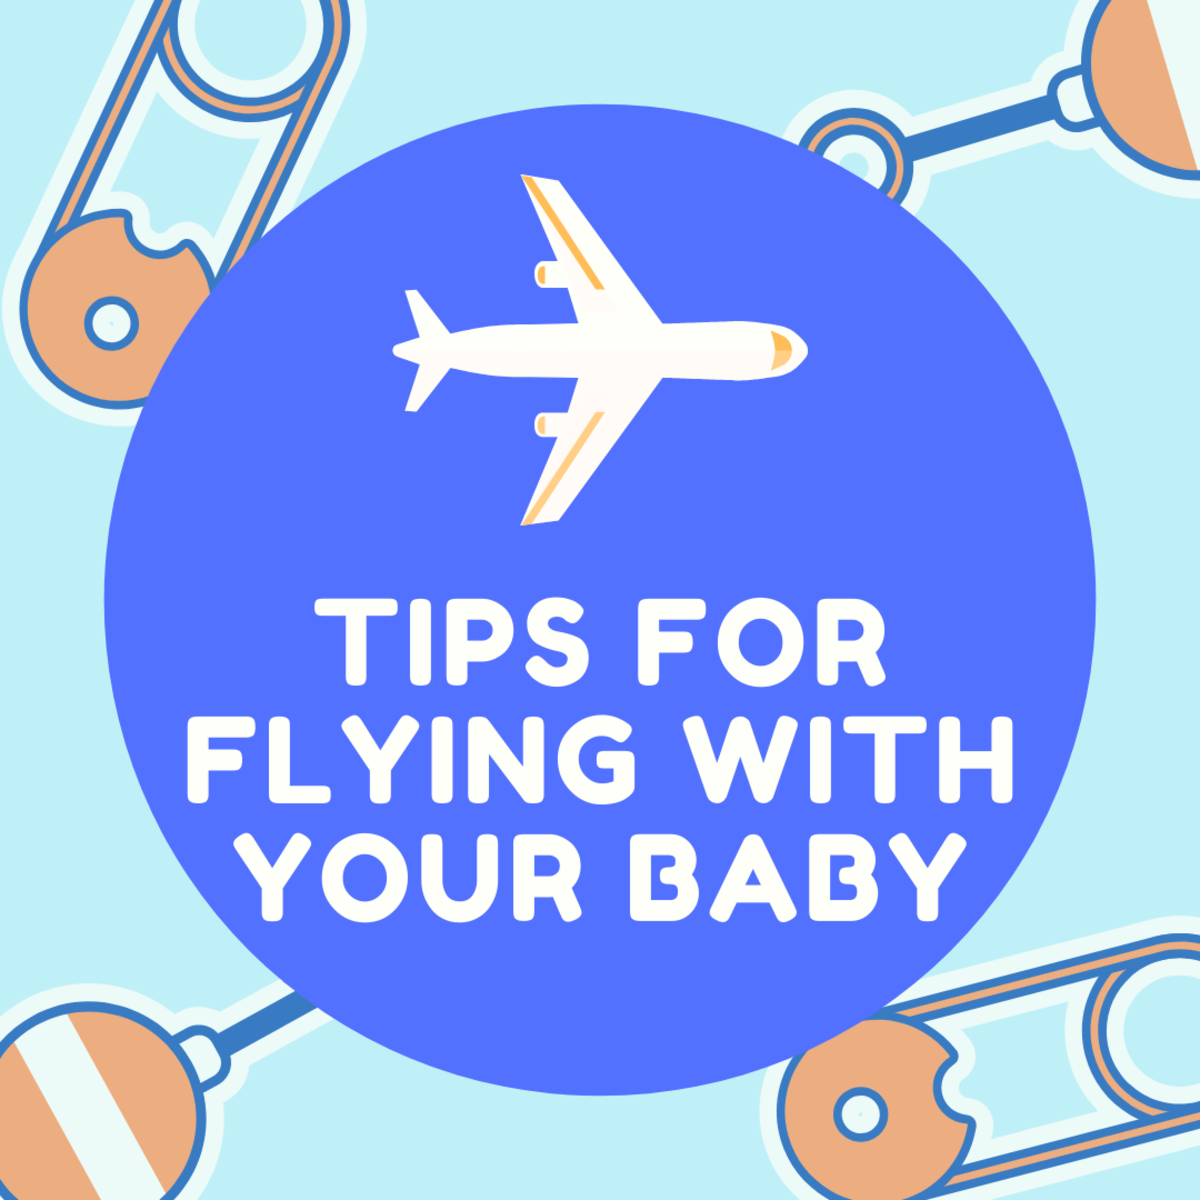 7 Tips for Traveling on an Airplane With a Baby